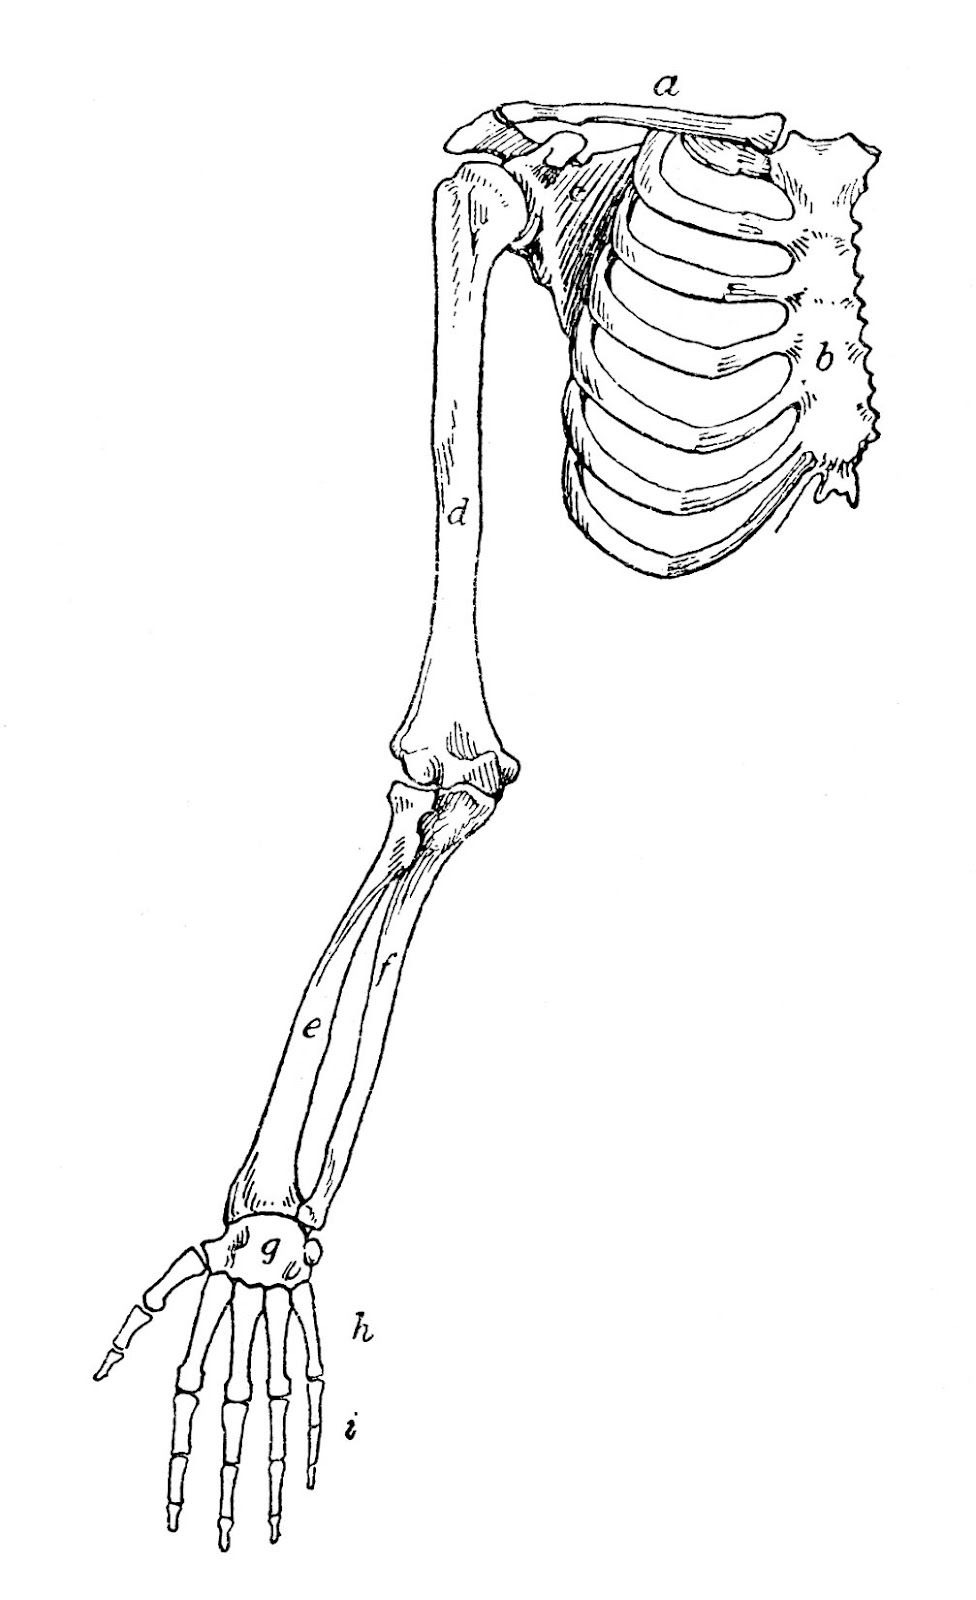 It S Time For Another Request Day I Do These Once A Month Now The Next One Will Be On Thursday September 6th An Anon Arm Bones Skeleton Drawings Anatomy Art